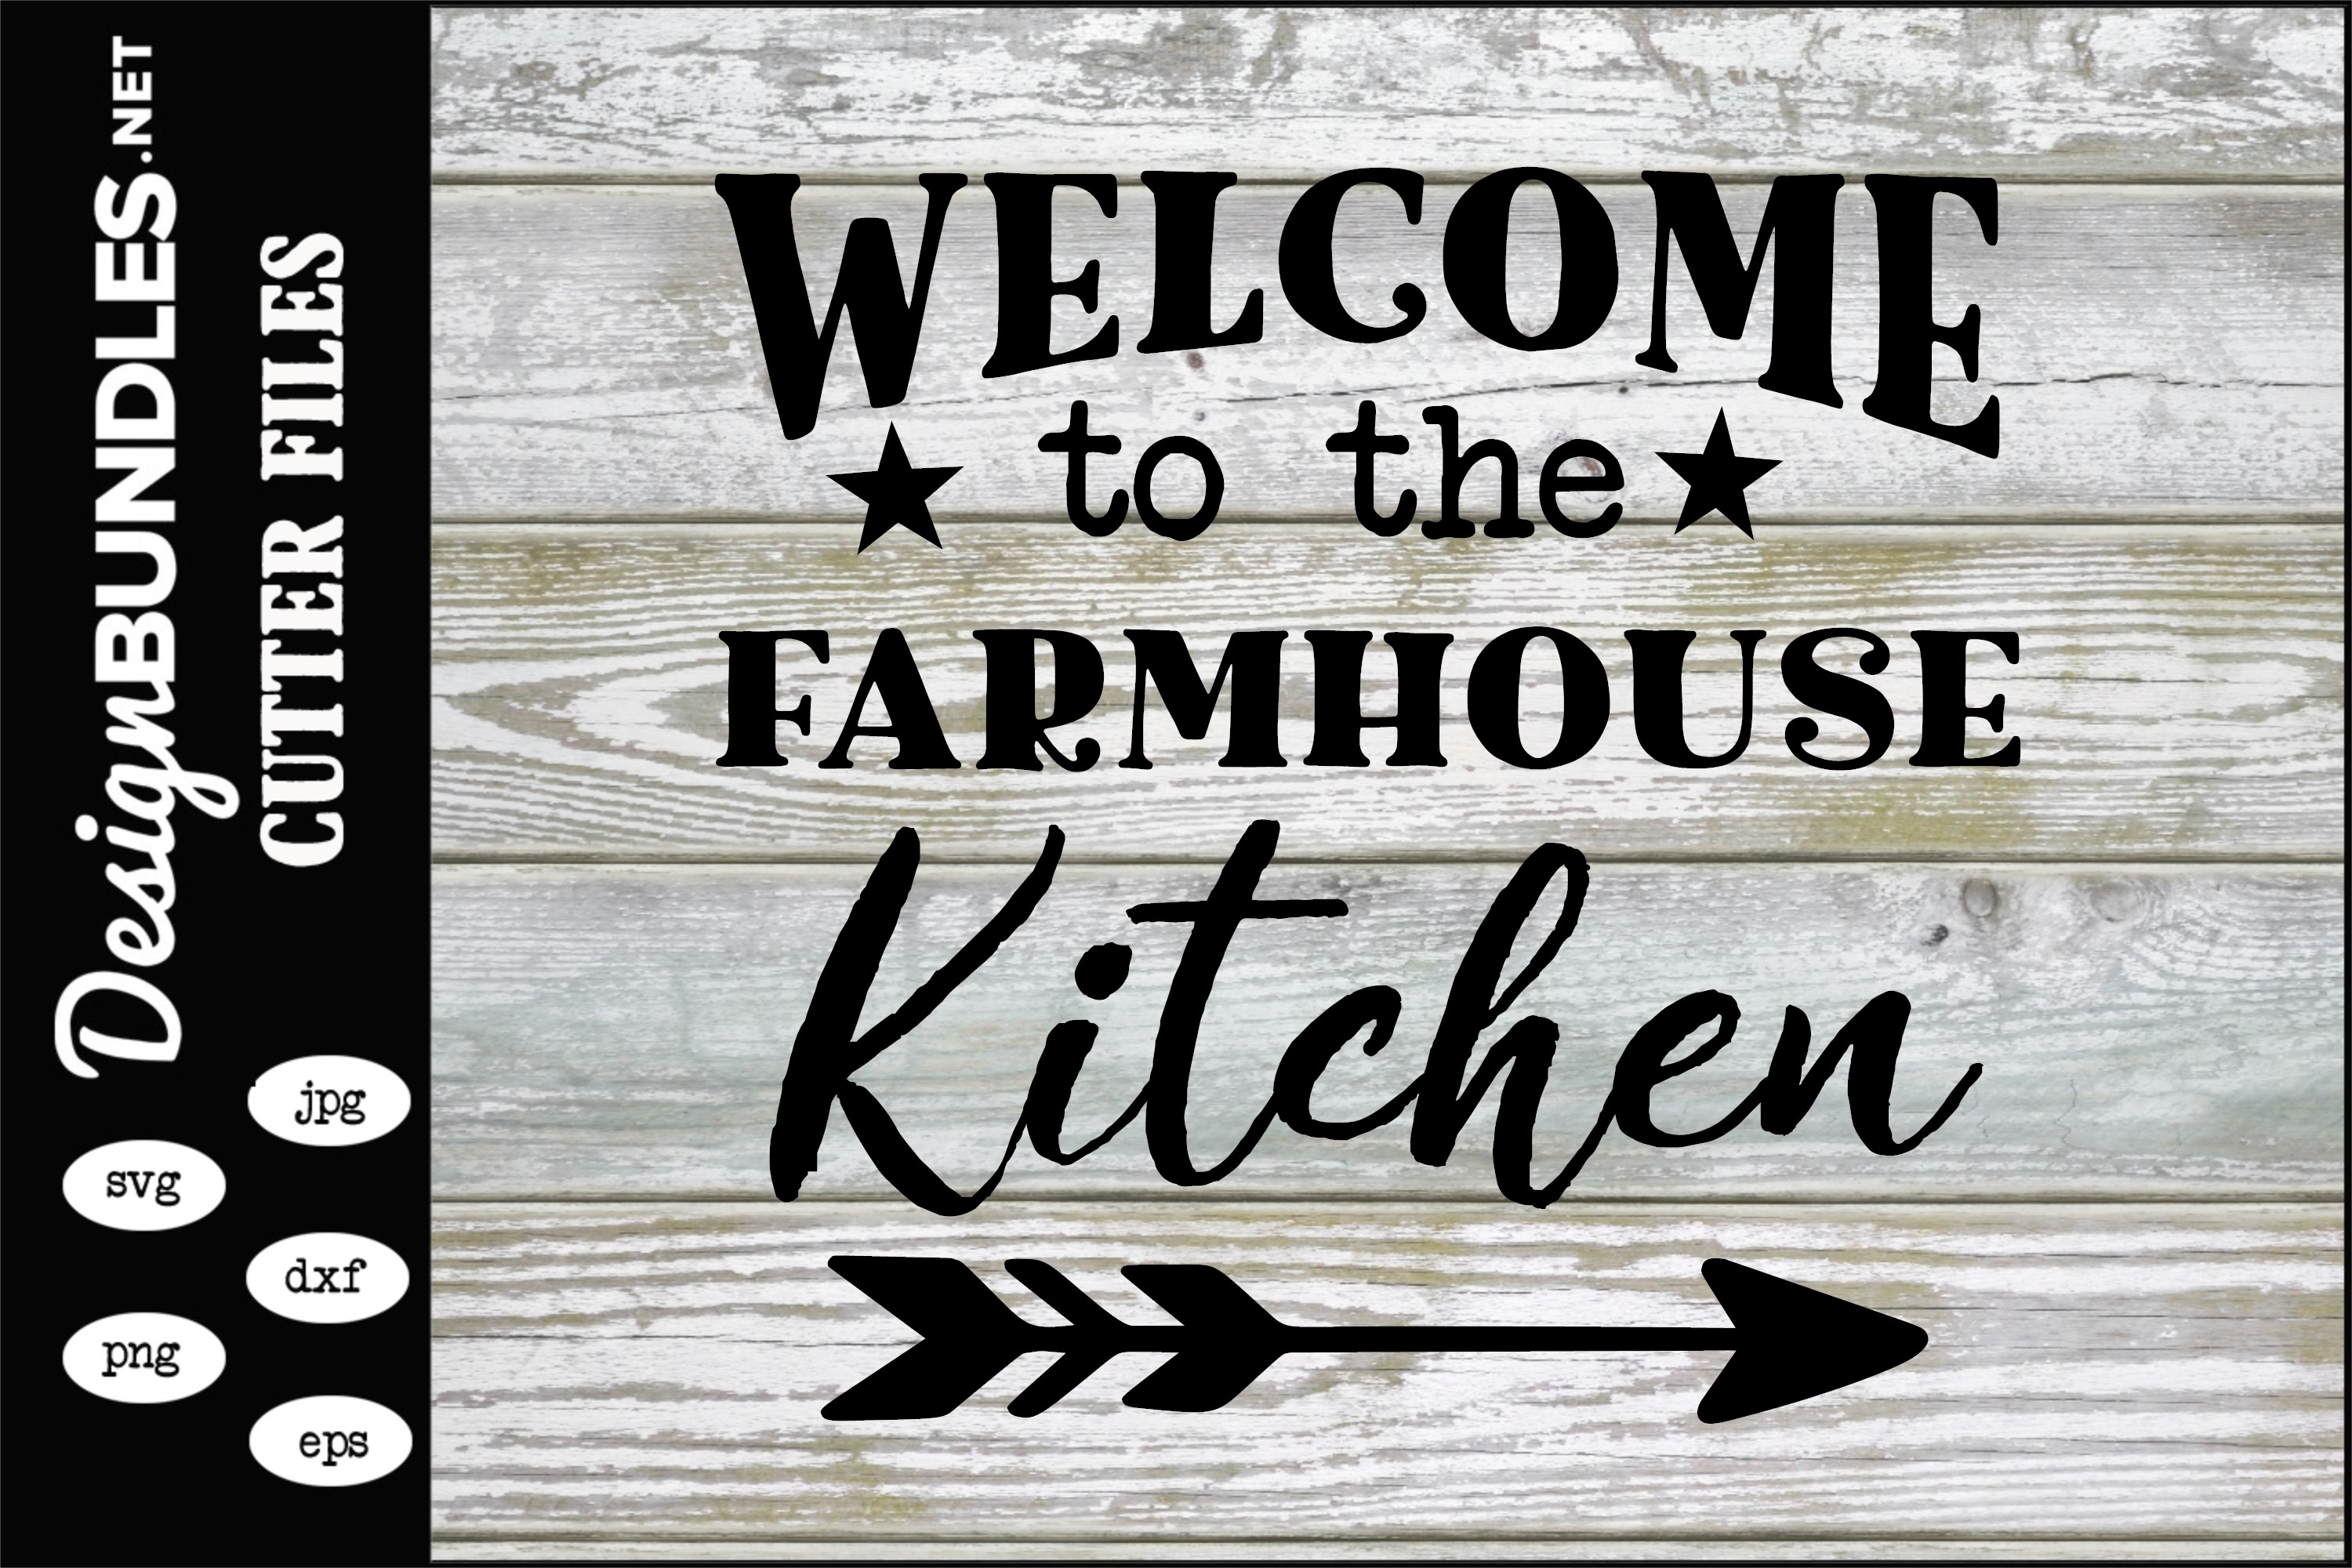 Farmhouse Kitchen SVG example image 1